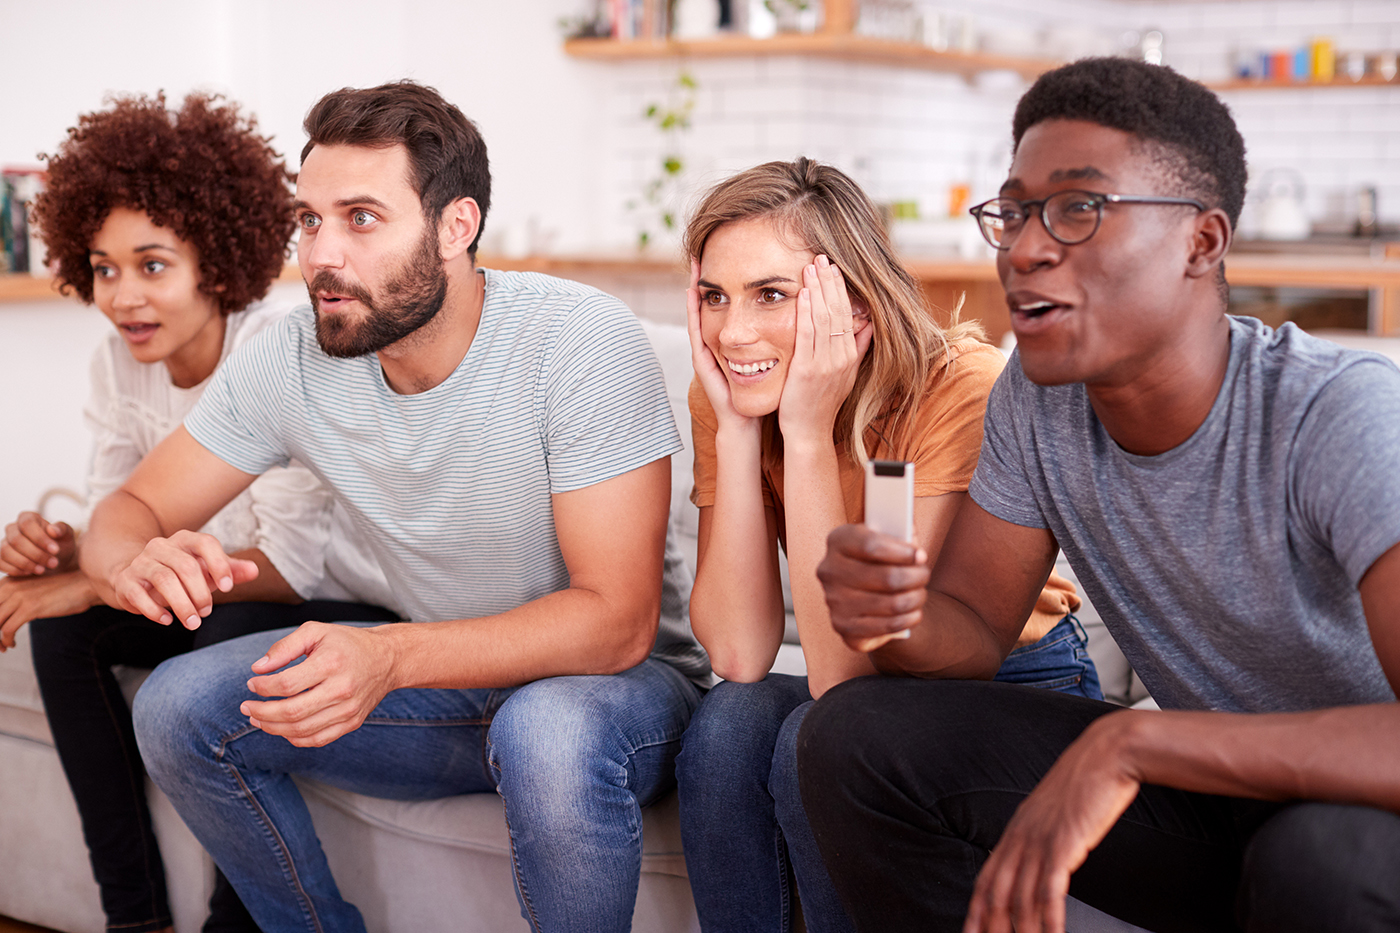 friends watching intense game on tv